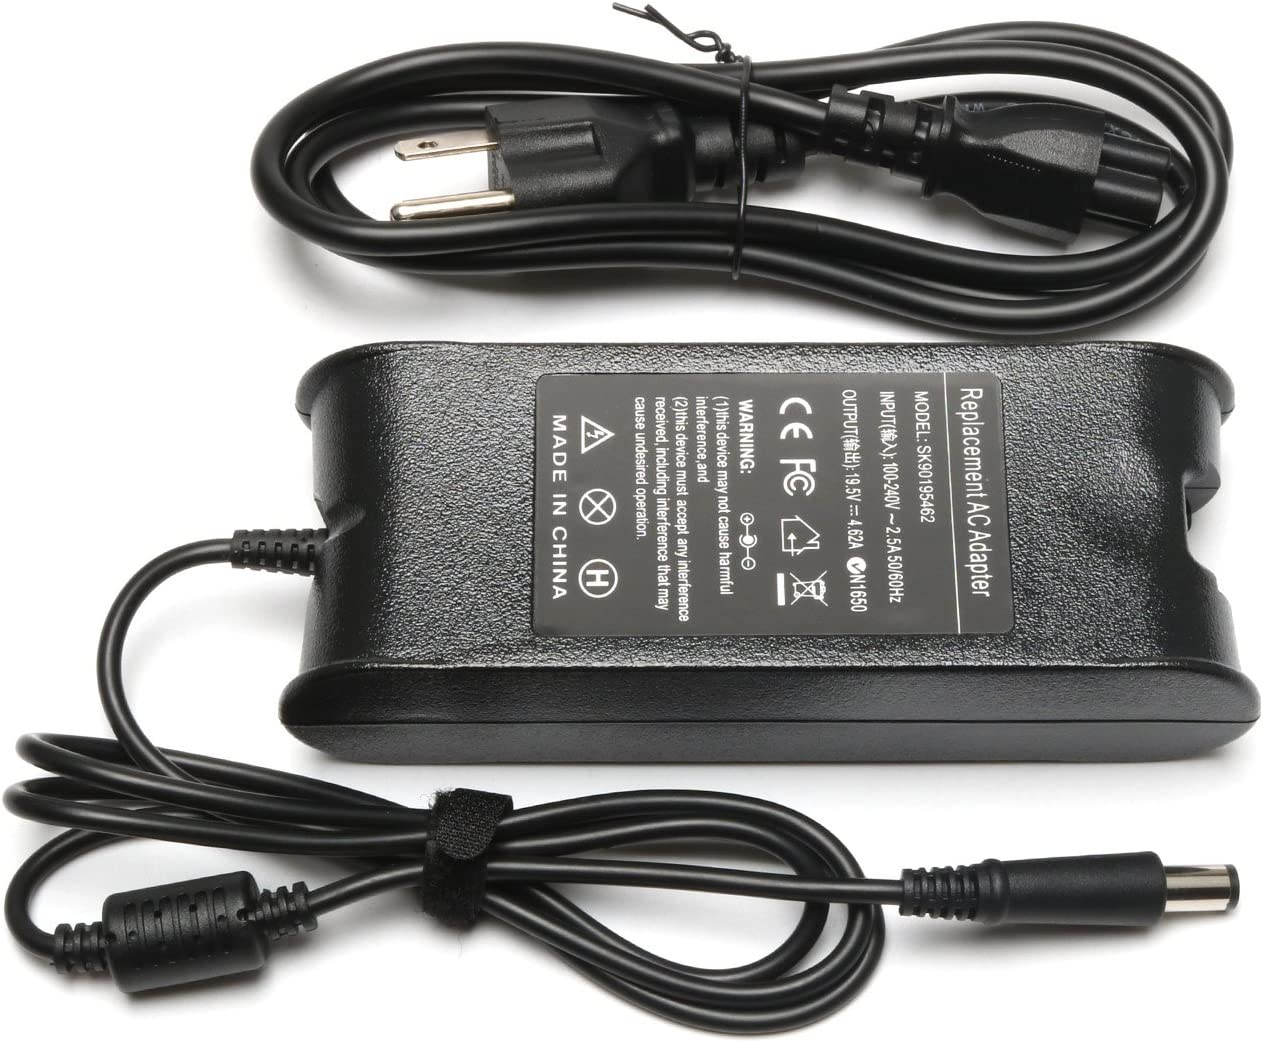 ELECBRAiN 90W PA-10 Replacement Charger for Inspiron M5030 N5010 17 17R 17Z 1720 1750 15 15R 15Z 1564 AC Adapter Power Supply fits PA10